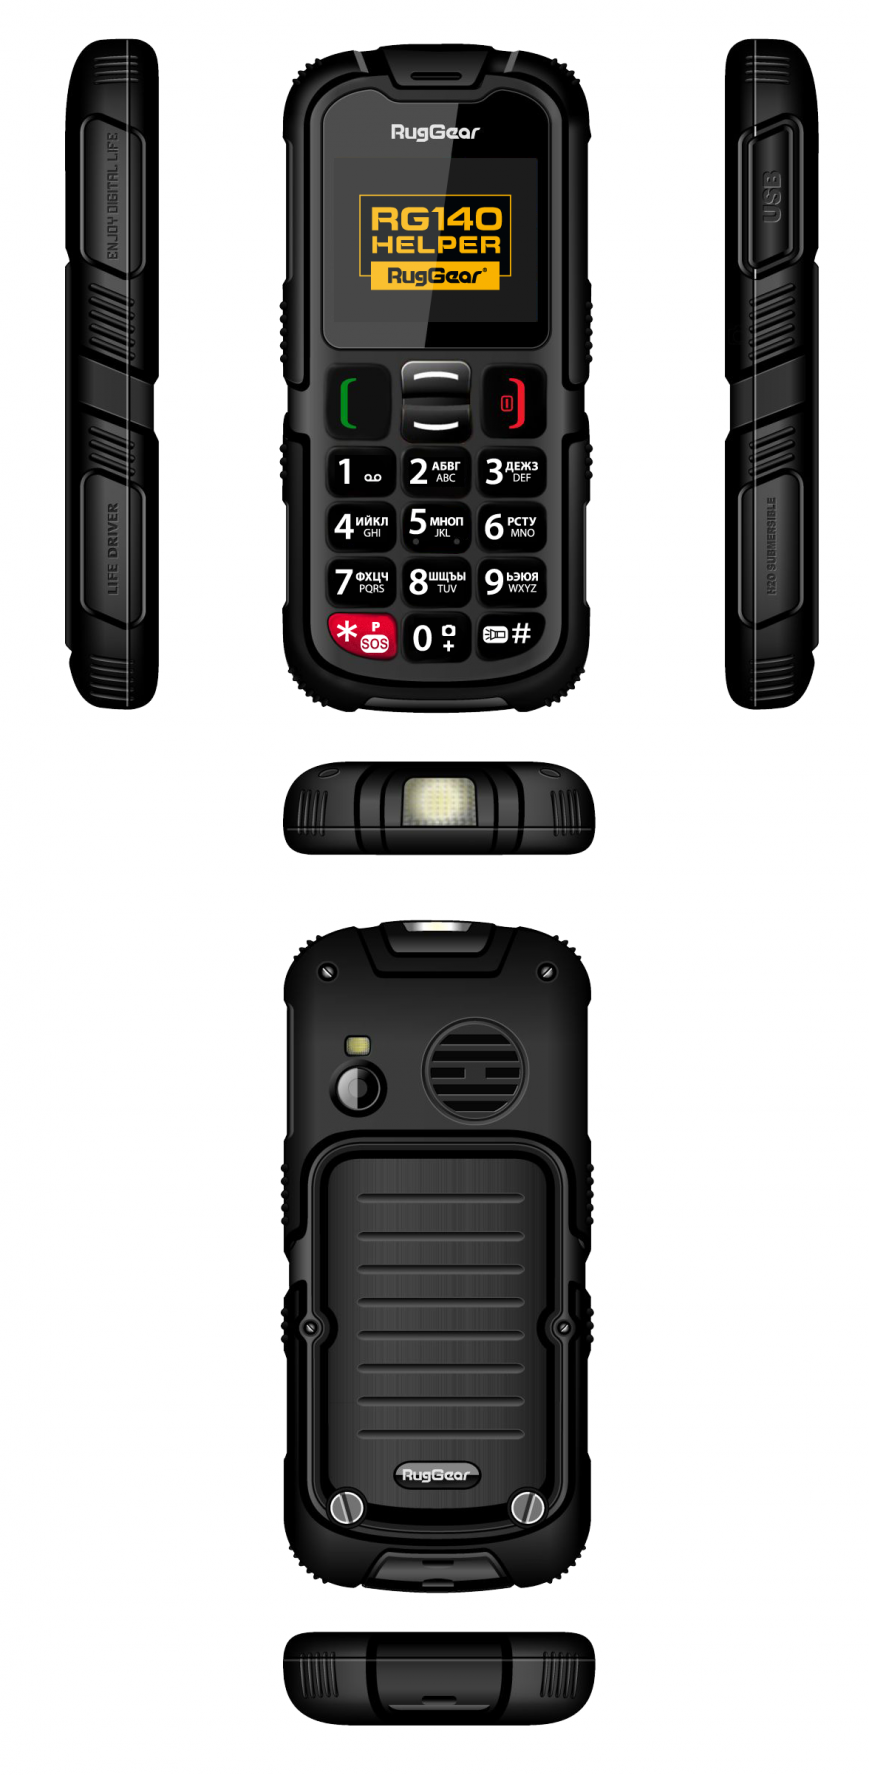 Protected phone RugGear Helper features a dedicated button